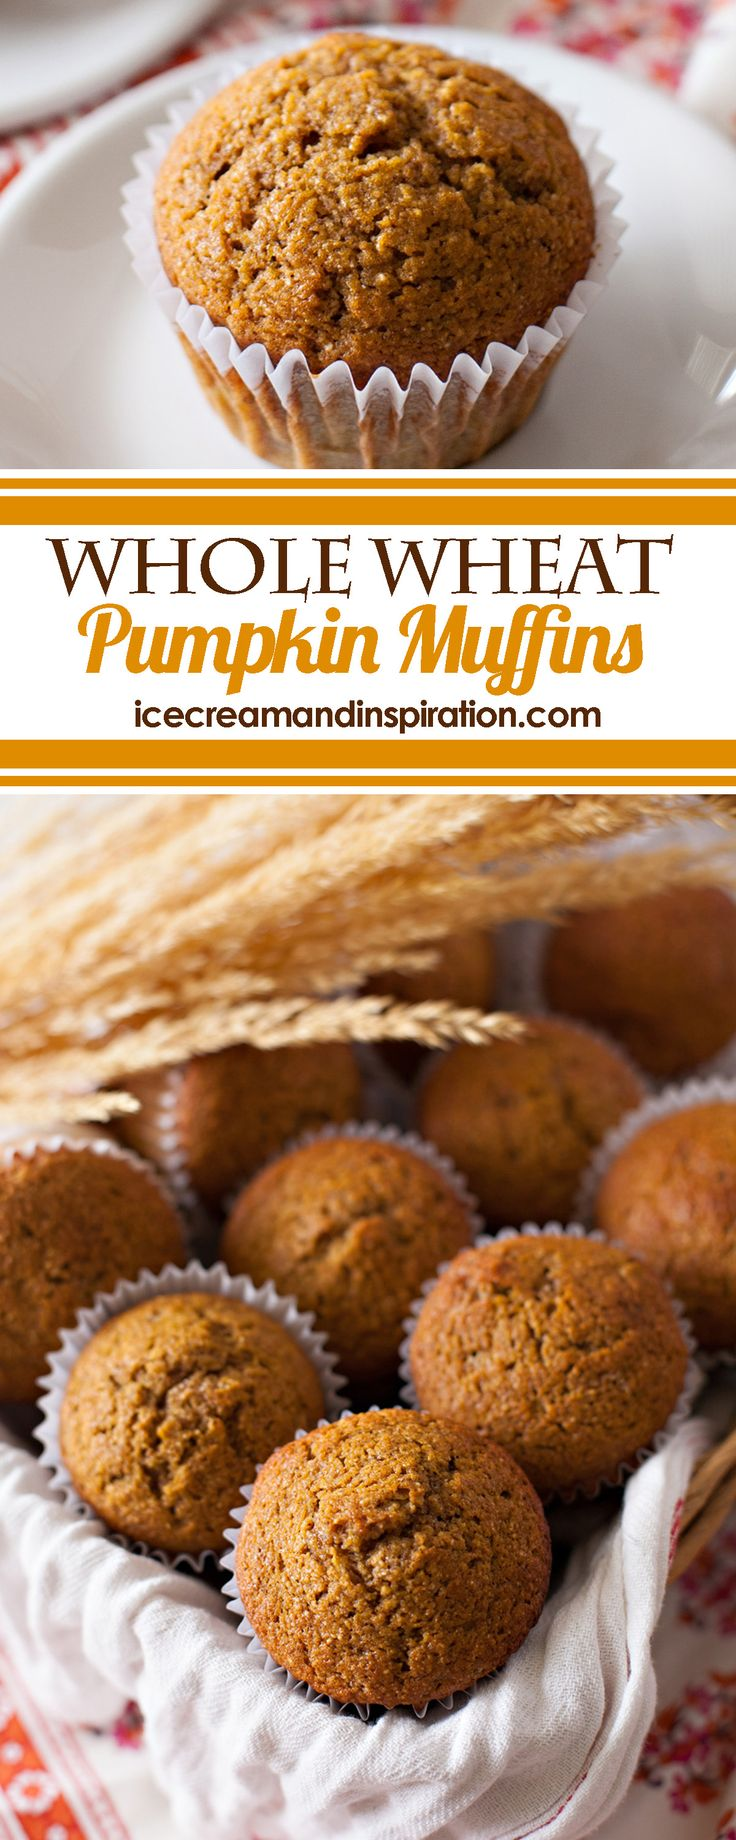 These healthy Whole Wheat Pumpkin Muffins have less sugar than traditional muffins and are chock-full of fiber and nutrients!